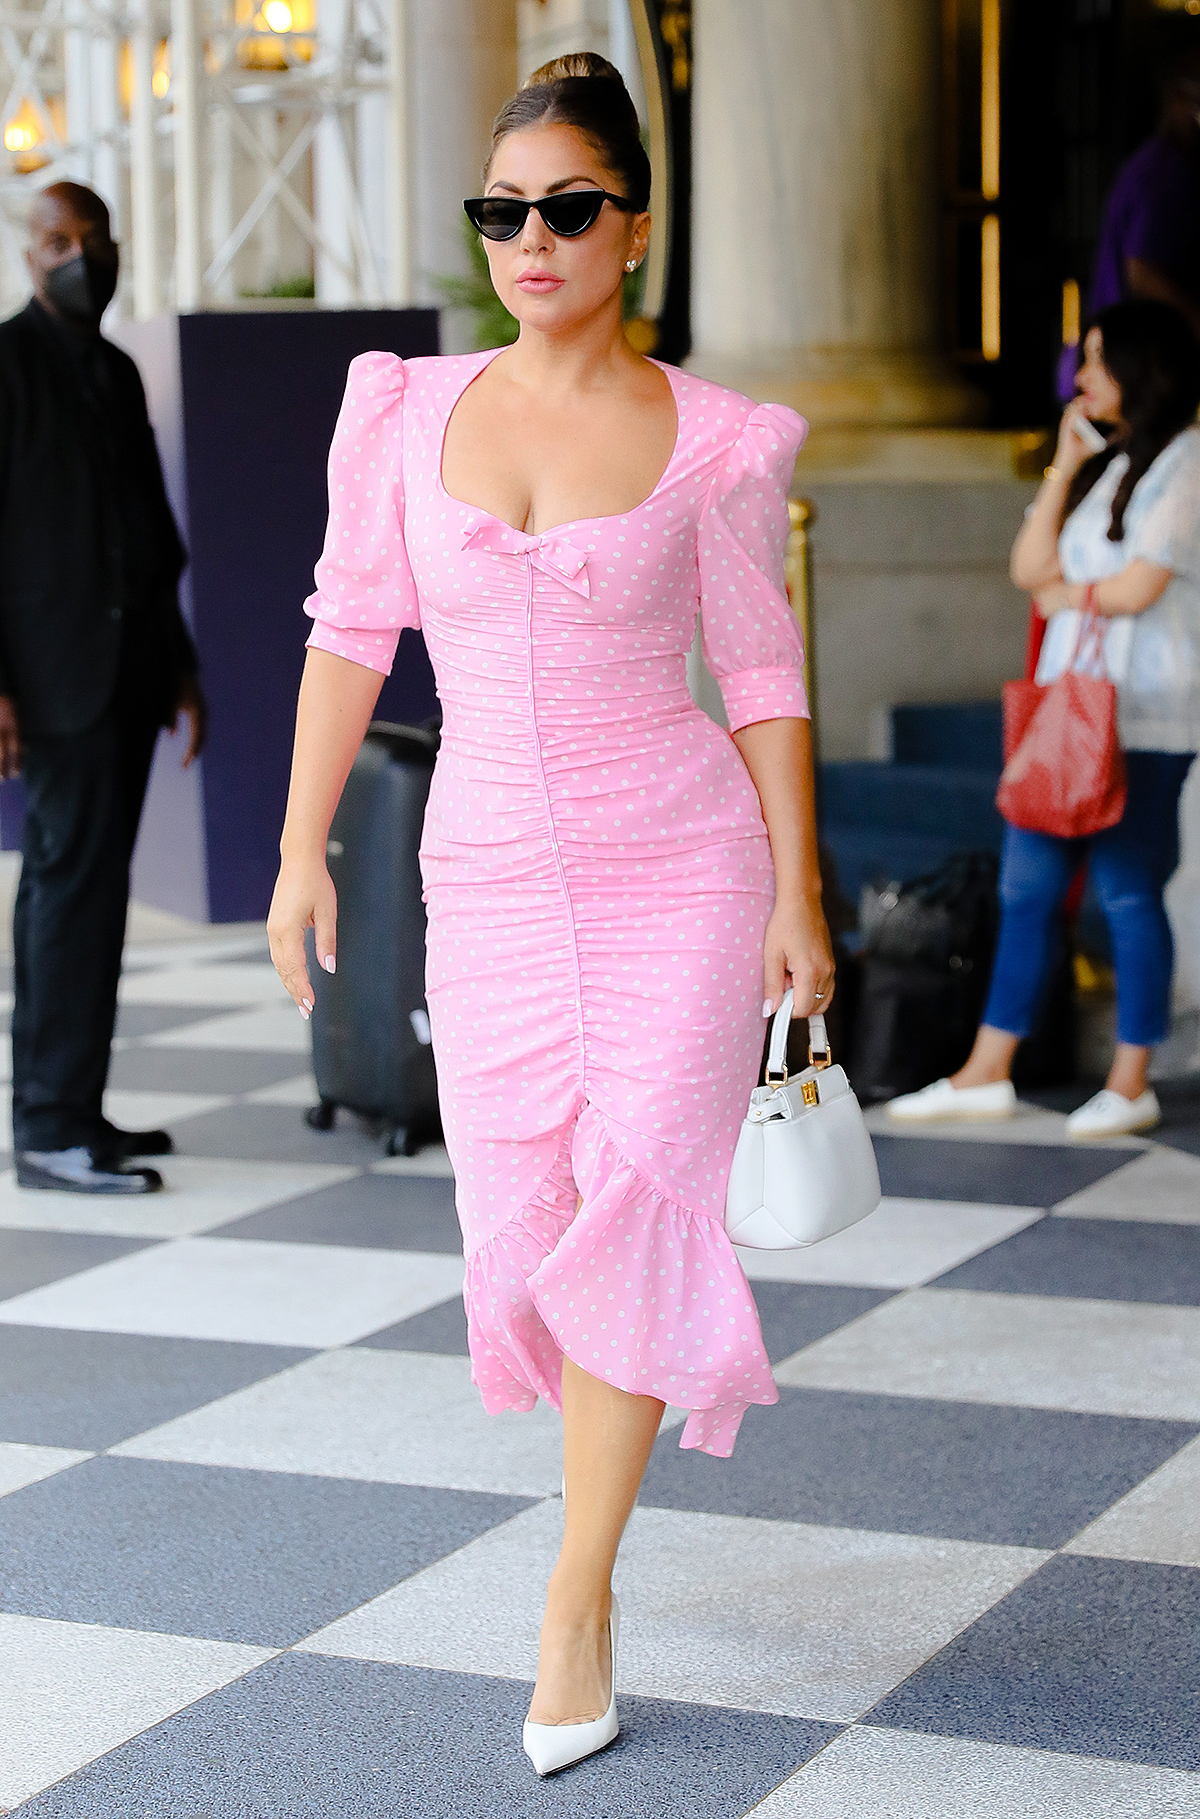 Style icon Lady Gaga looks fabulous in a Alessandra Rich pink polka dot dress as she steps out in New York City.